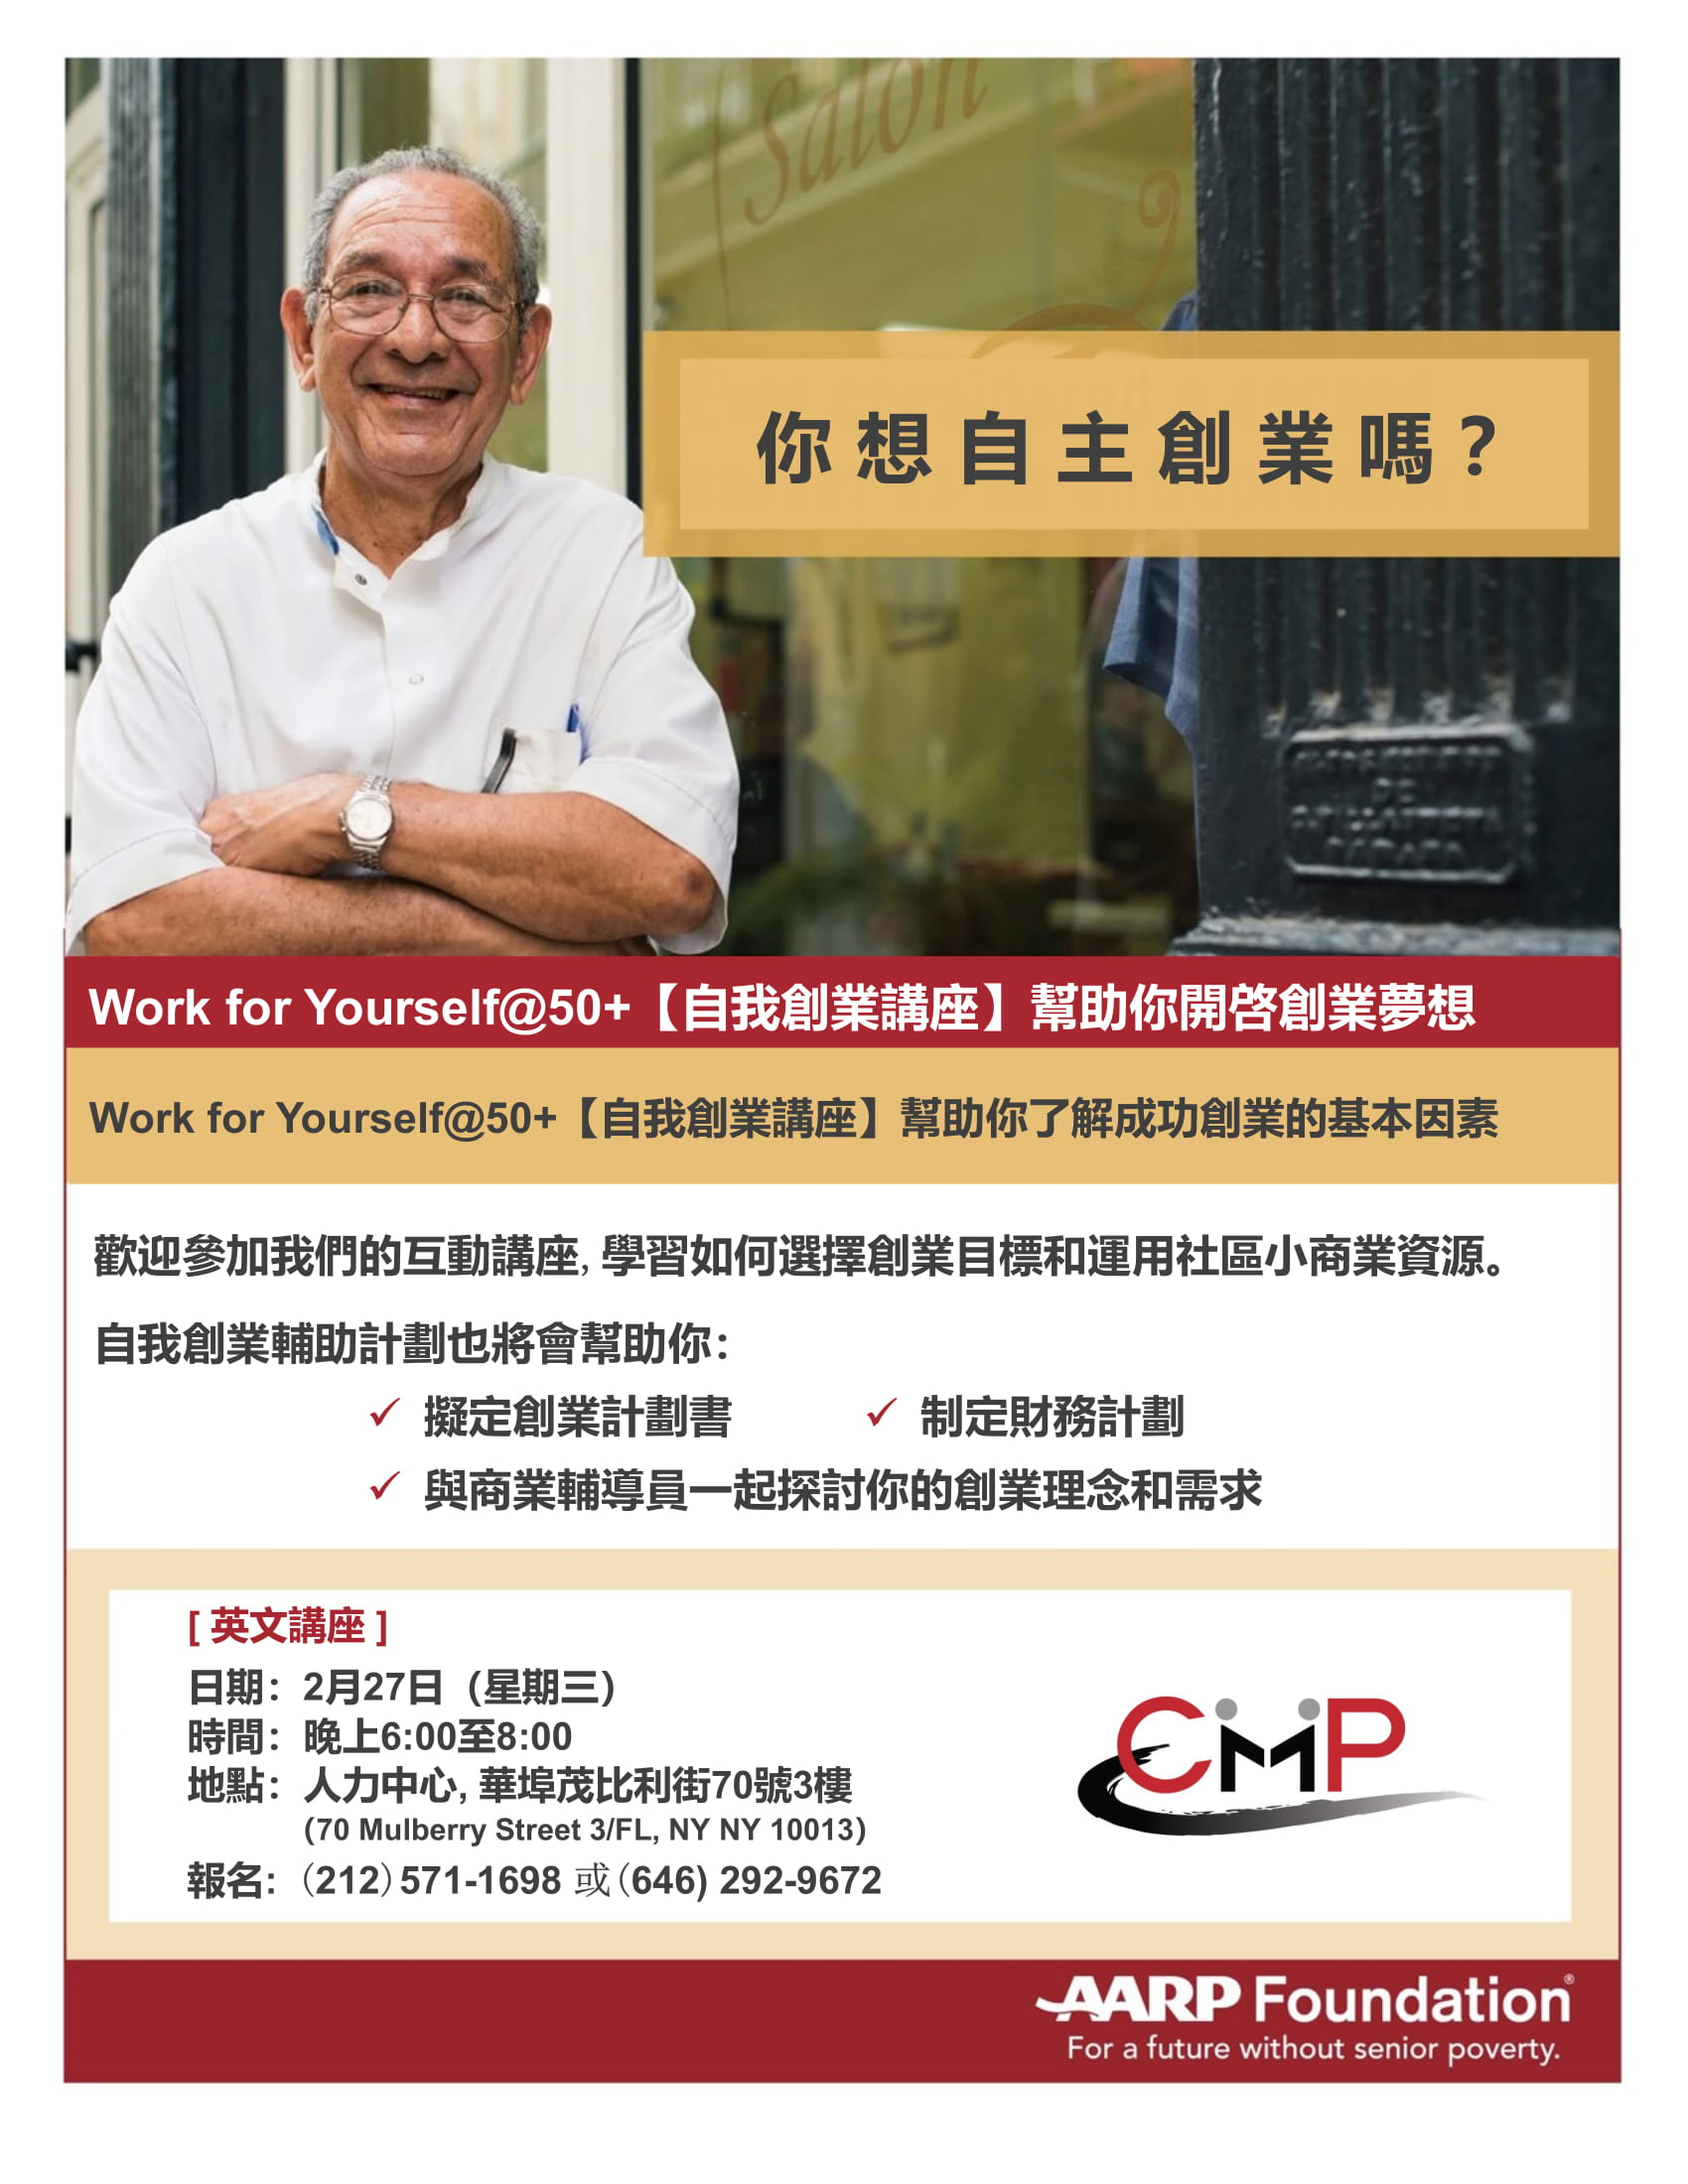 WFY50+ Workshop Flyer -Chinese.jpg